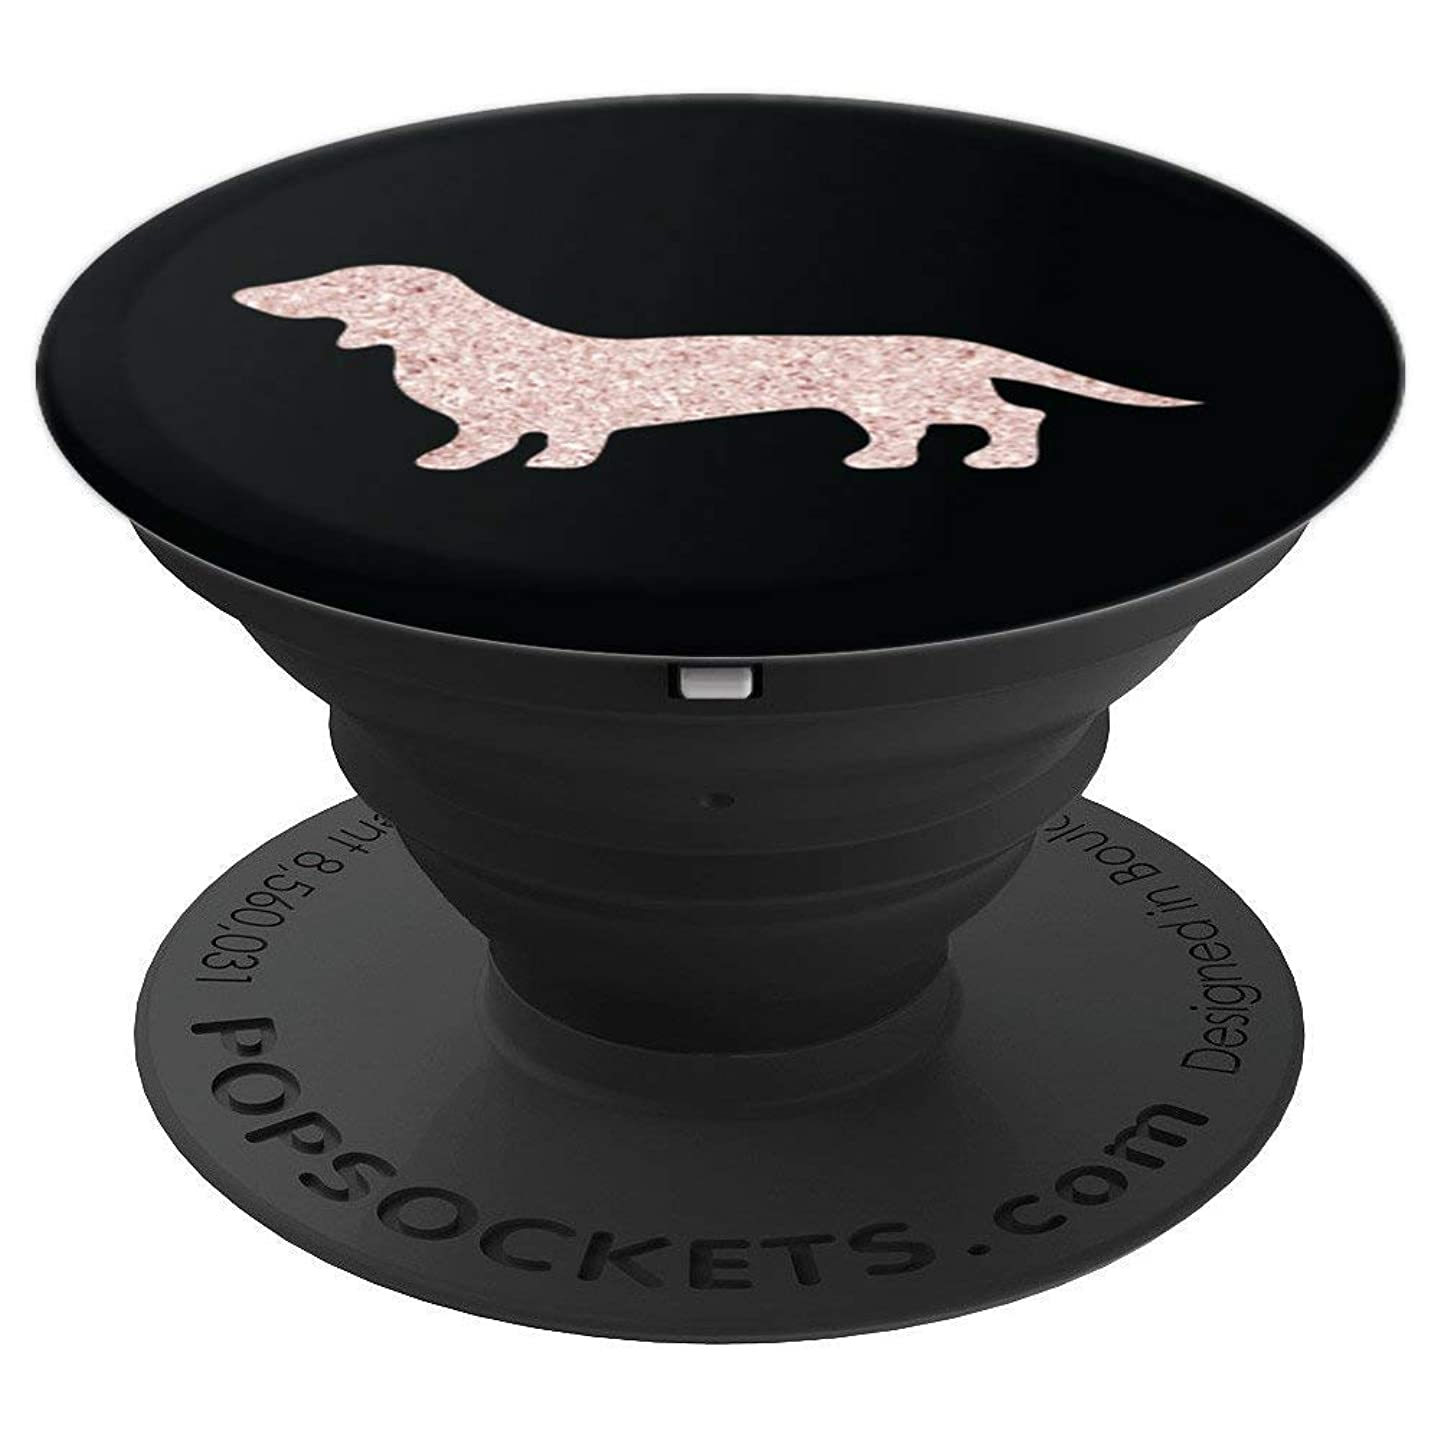 Rose Gold Daschund Dog on a Beautiful Black Background - PopSockets Grip and Stand for Phones and Tablets